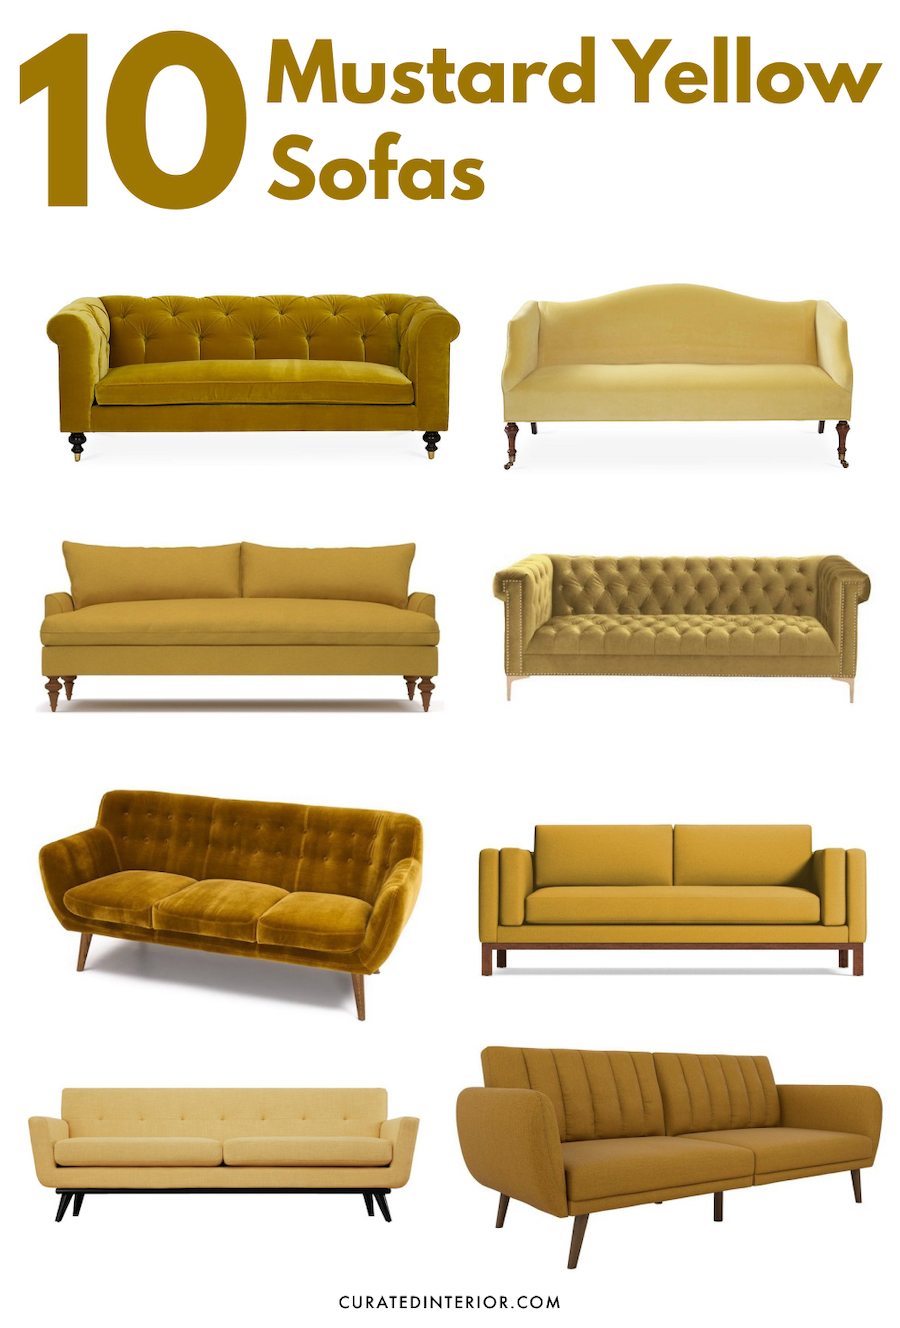 10 Mustard Yellow Sofas for a Mid-Century Modern Vibe